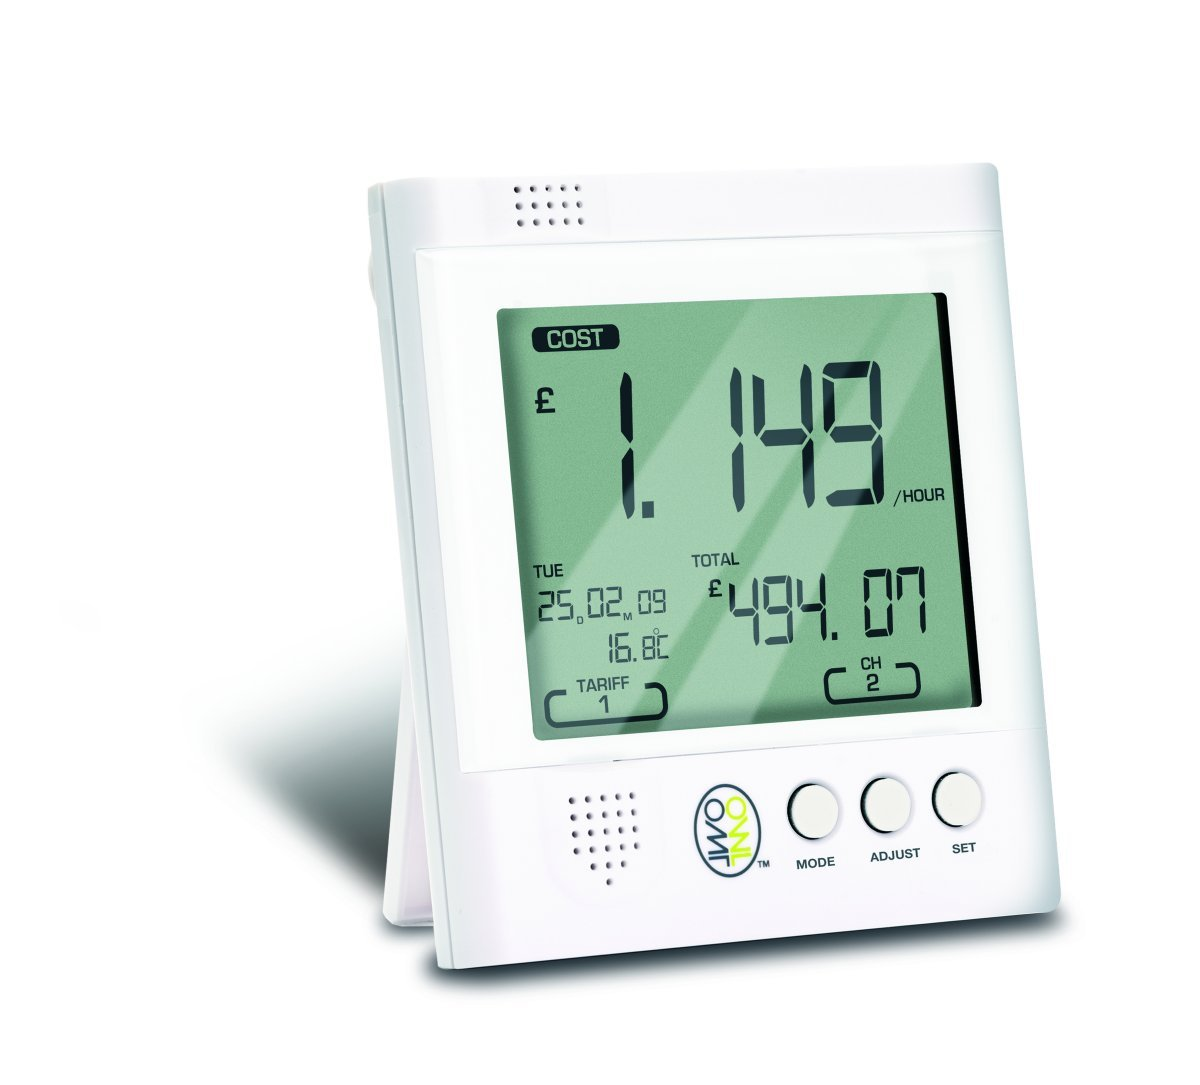 Owl Cm119 Wireless Electricity Monitor TSE003-101 Reference Reference Other TSE003001 green energy saving saver cm199 cm113